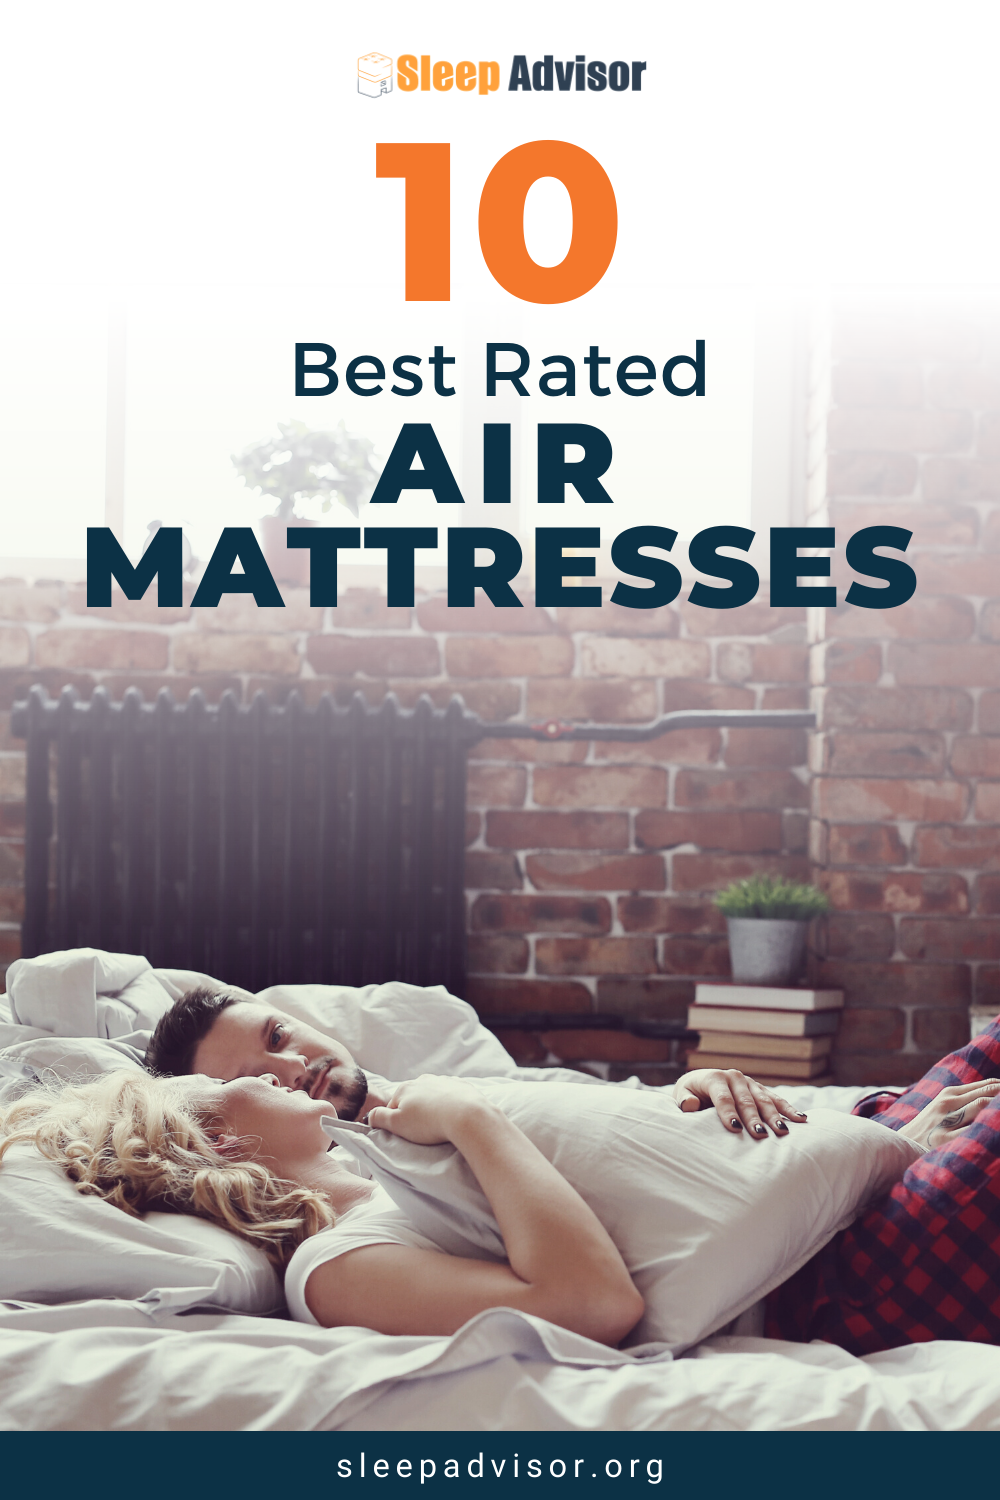 The Top 10 Best Rated Air Mattress Reviews (August 2020